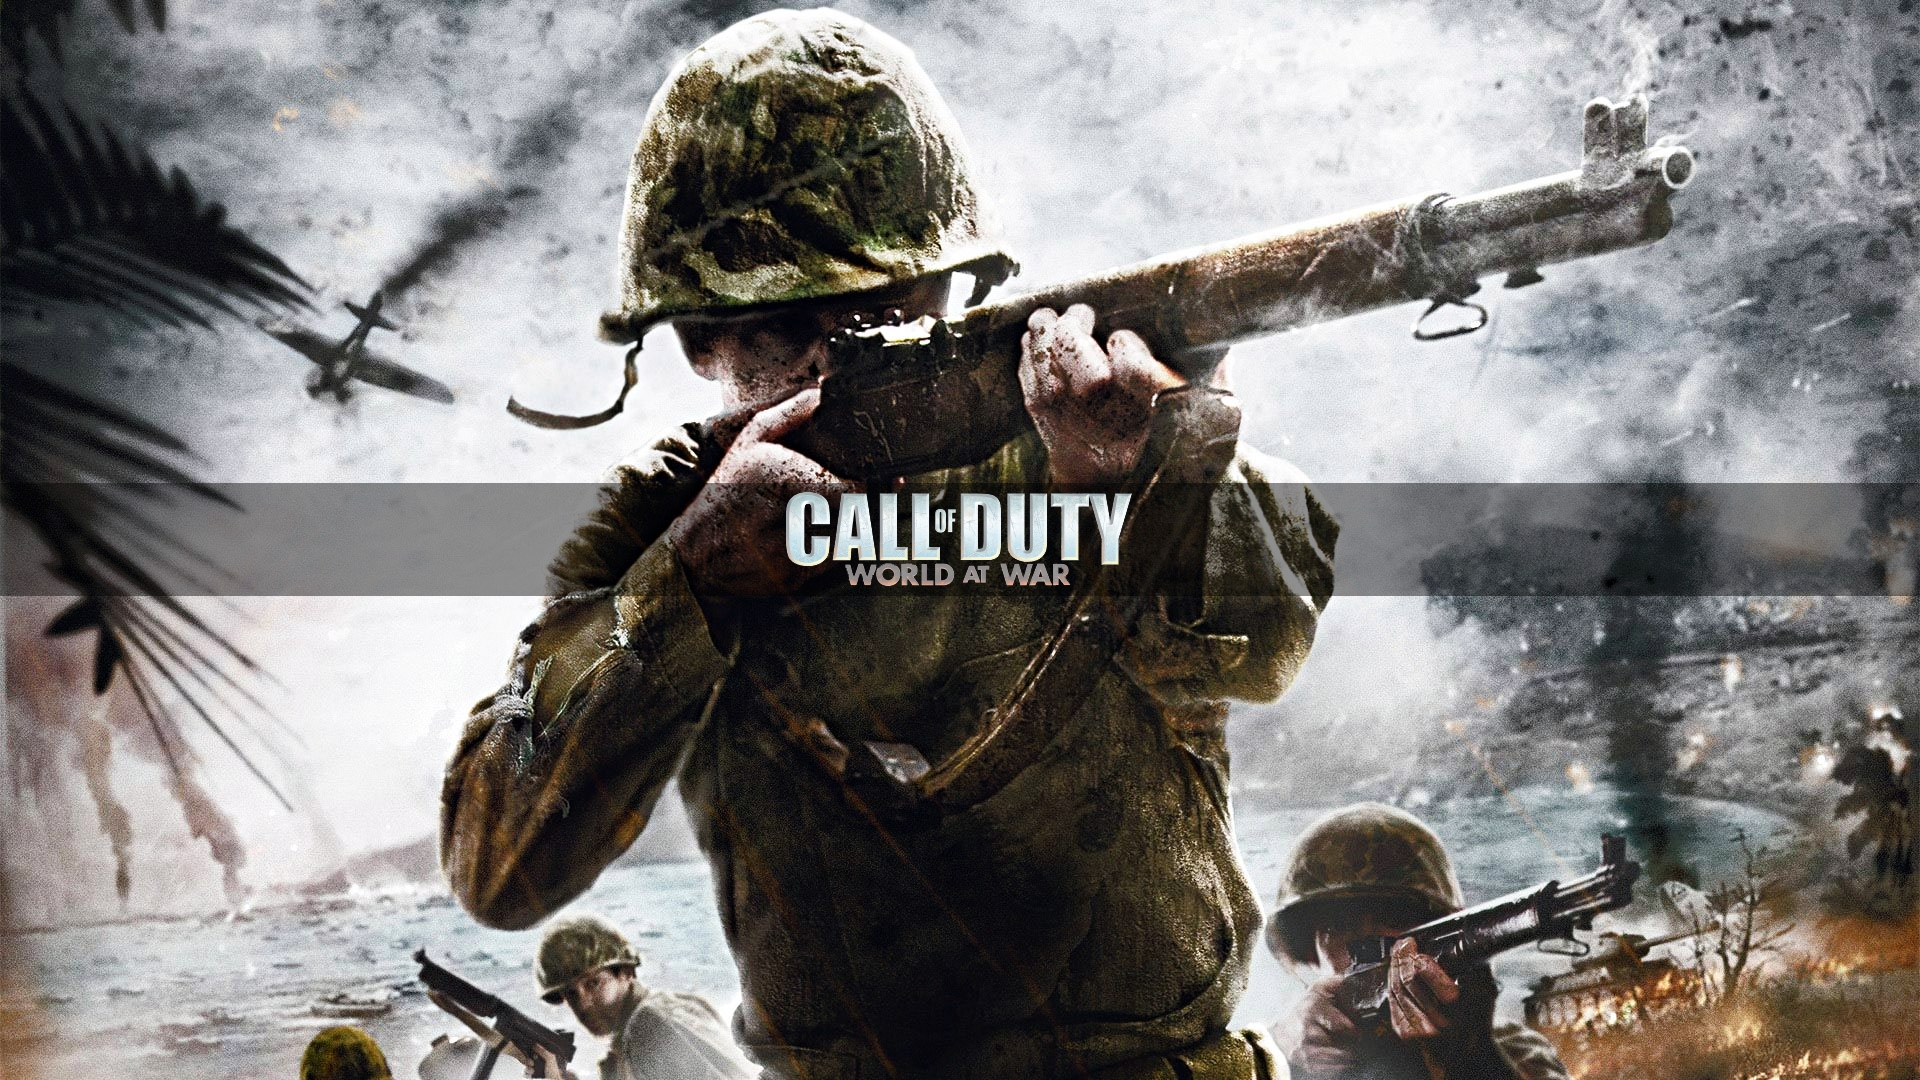 META-Call-of-Duty-Pack-1920x1080-Need-iPhone-S-Plus-Background-for-wallpaper-wp3601661